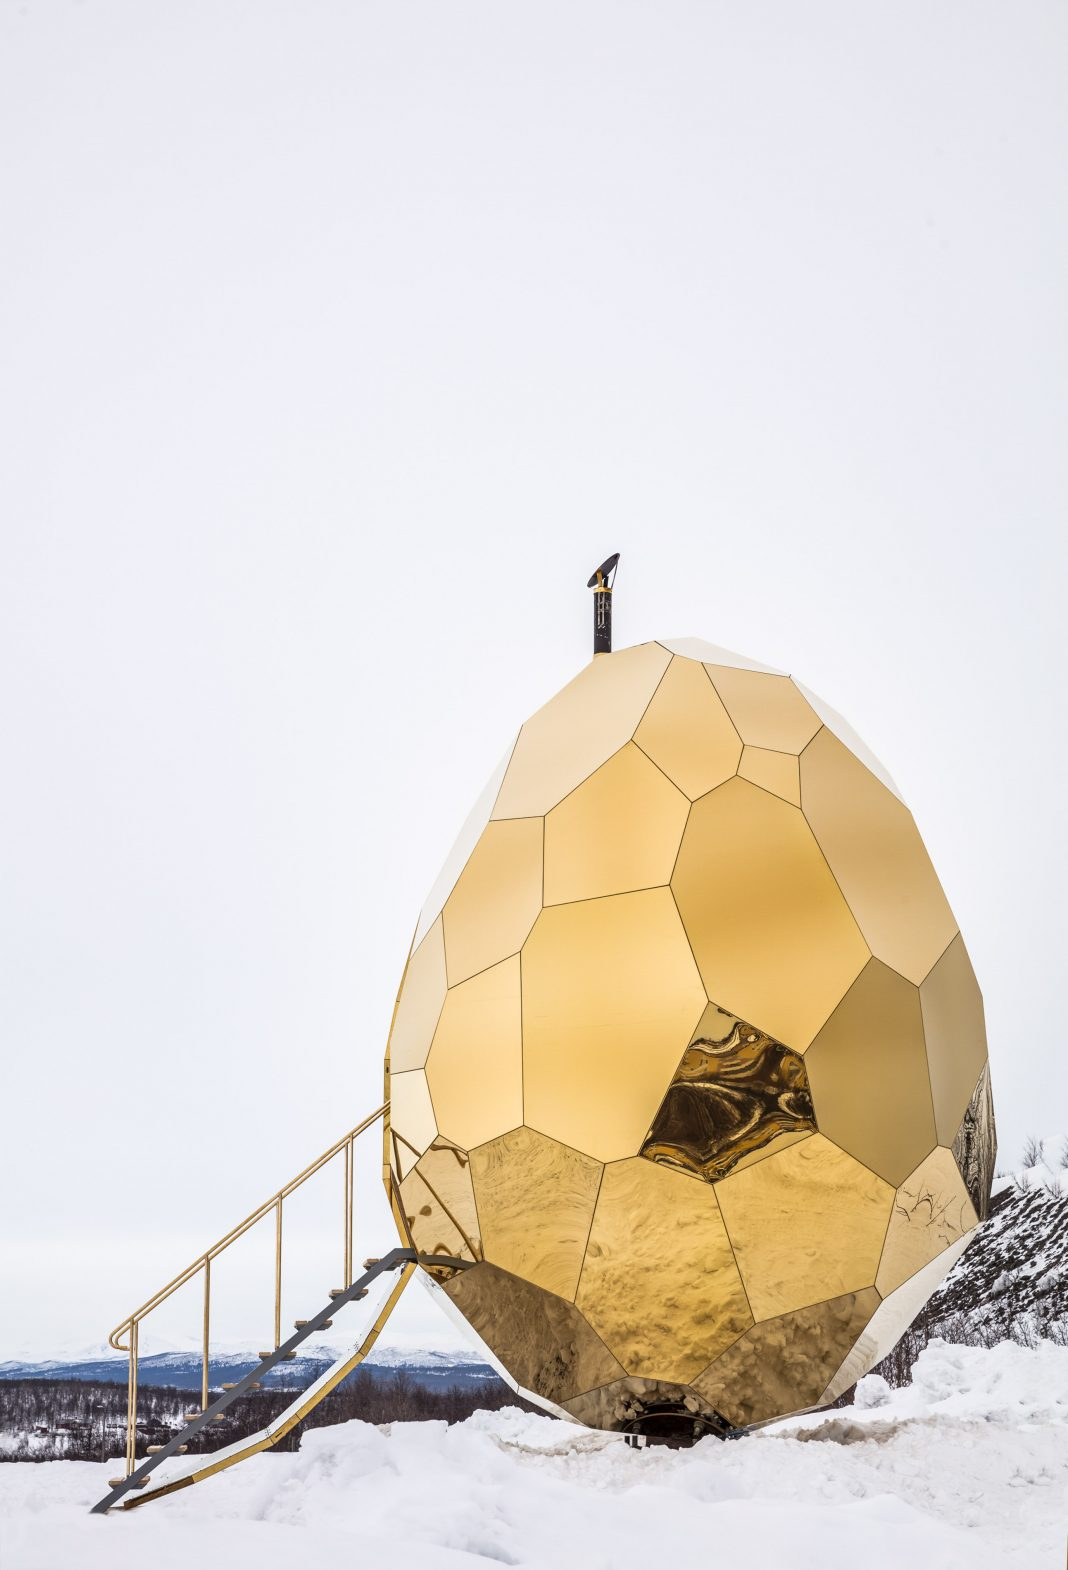 The solar golden egg sauna stands remarkable in the cold Swedish landscape.